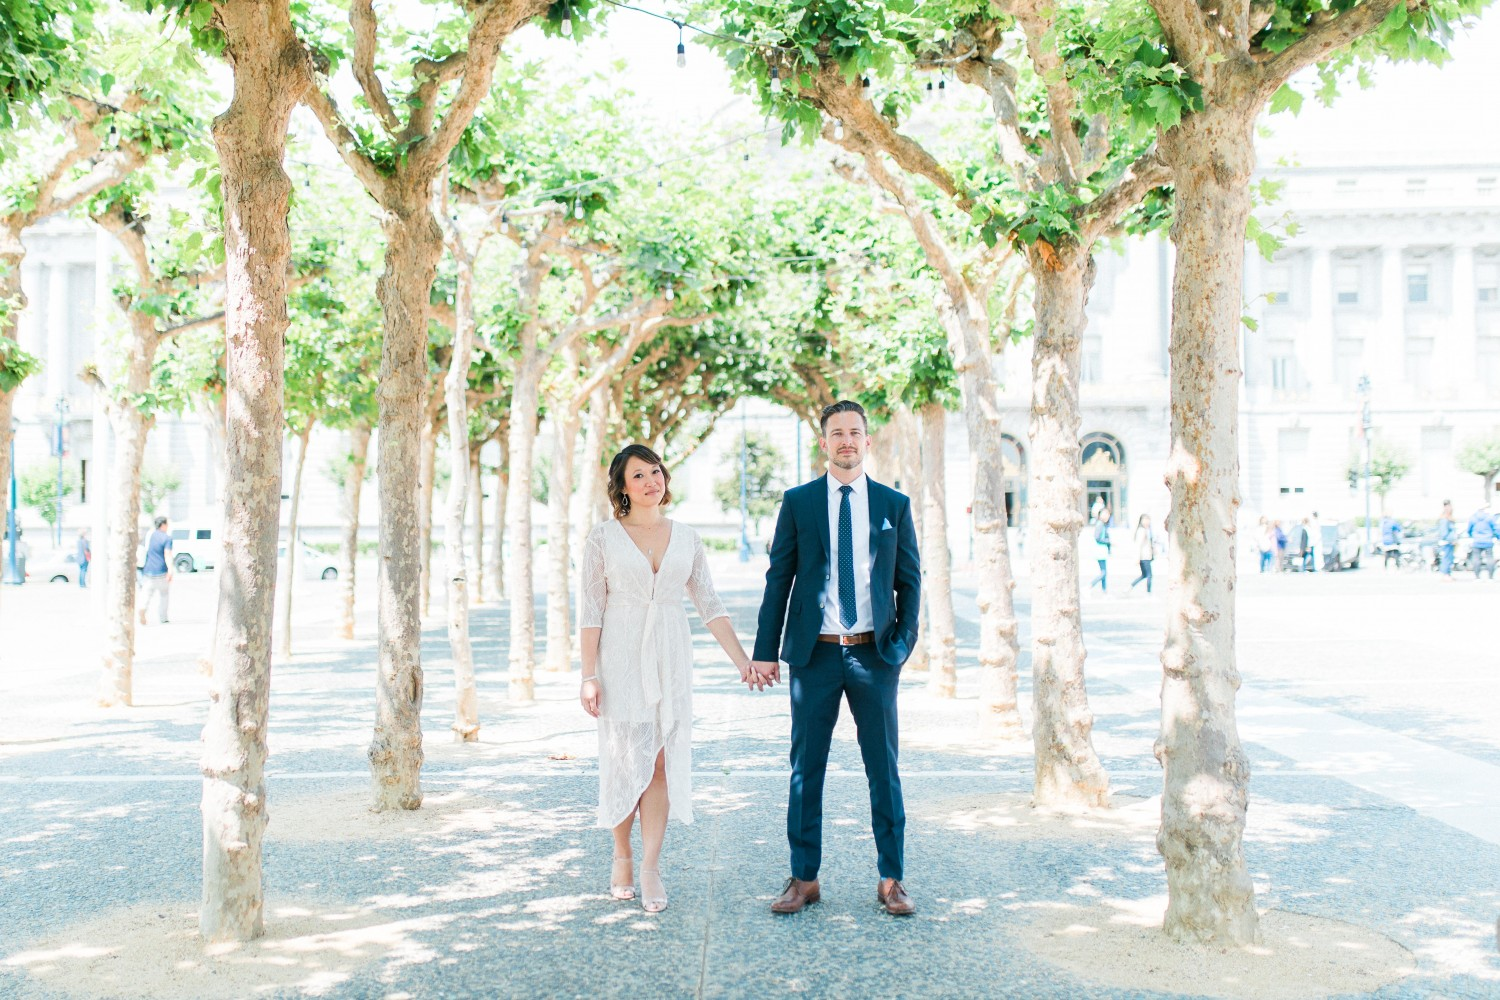 How-to-get-married-at-san-francisco-city-hall-outside.jpg